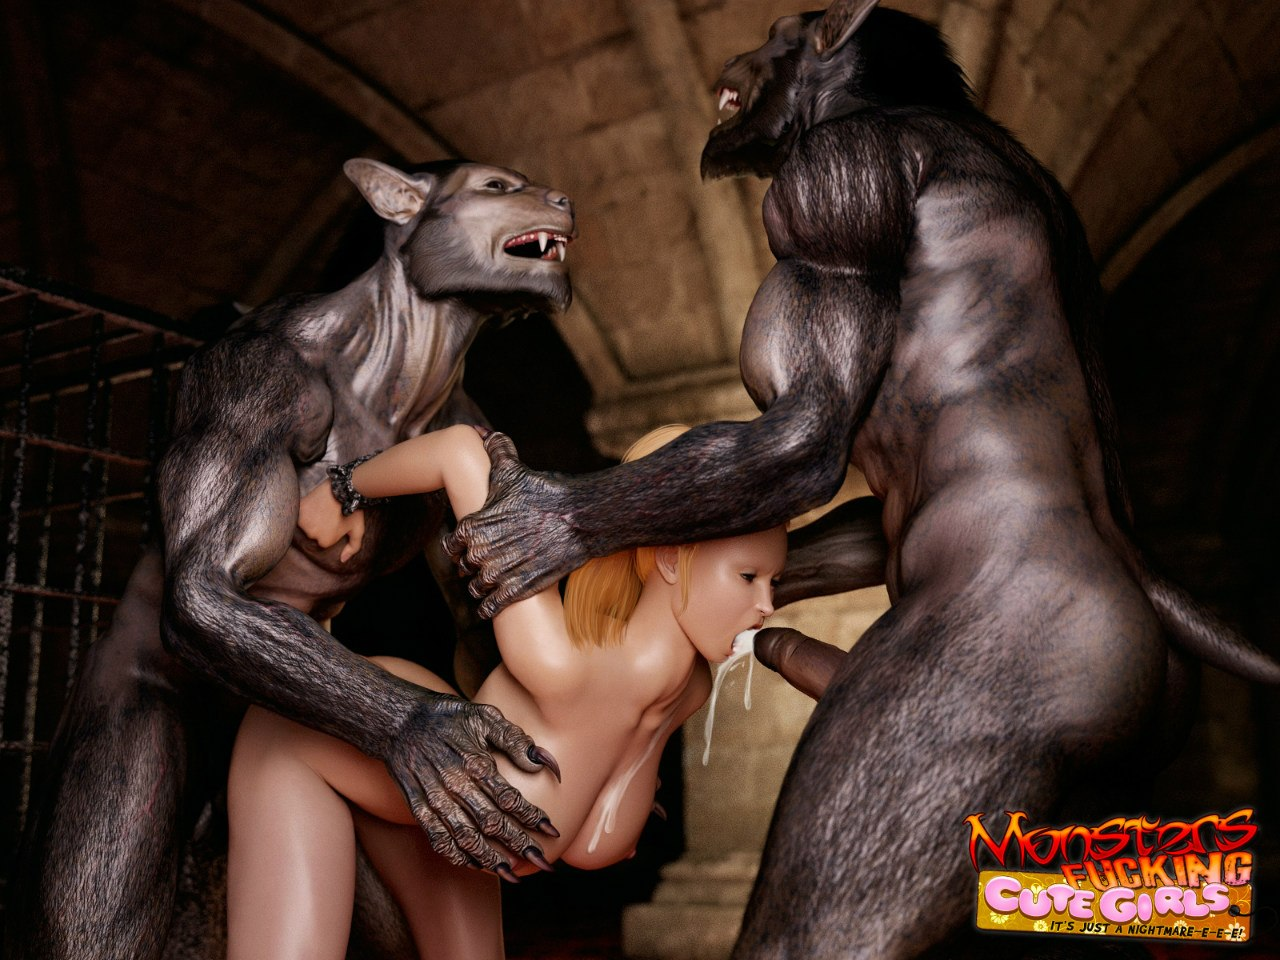 Free porn videos with werewolf sex pictures